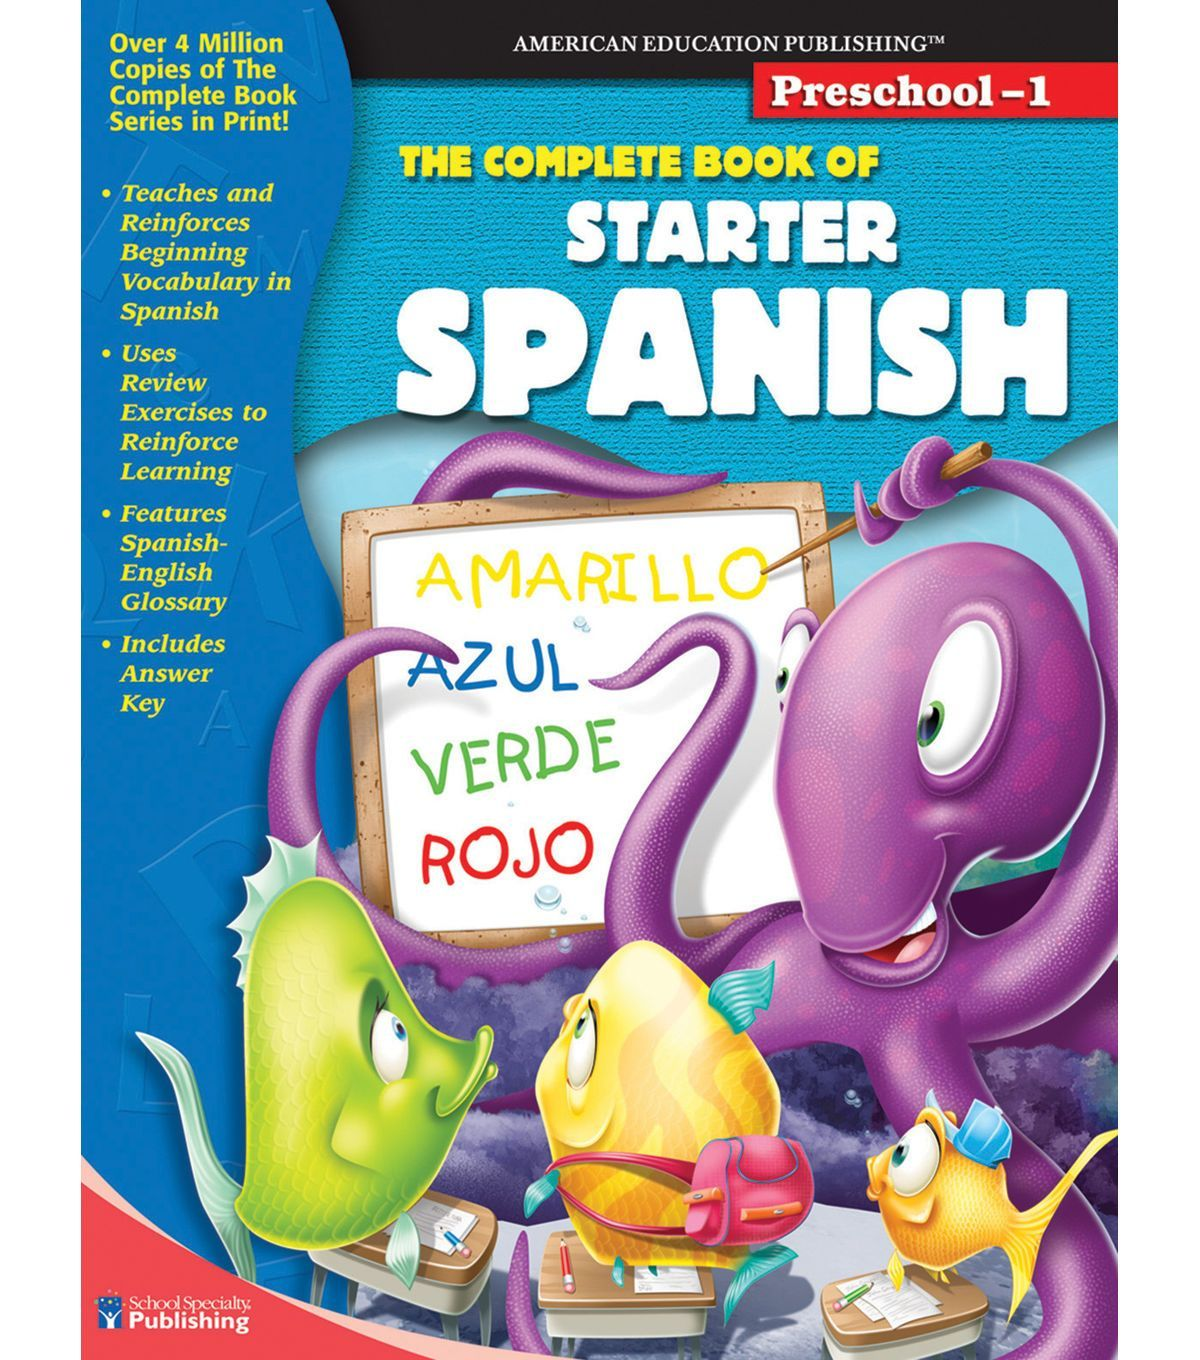 Authentic Spanish Books for Kids: The Ultimate Guide